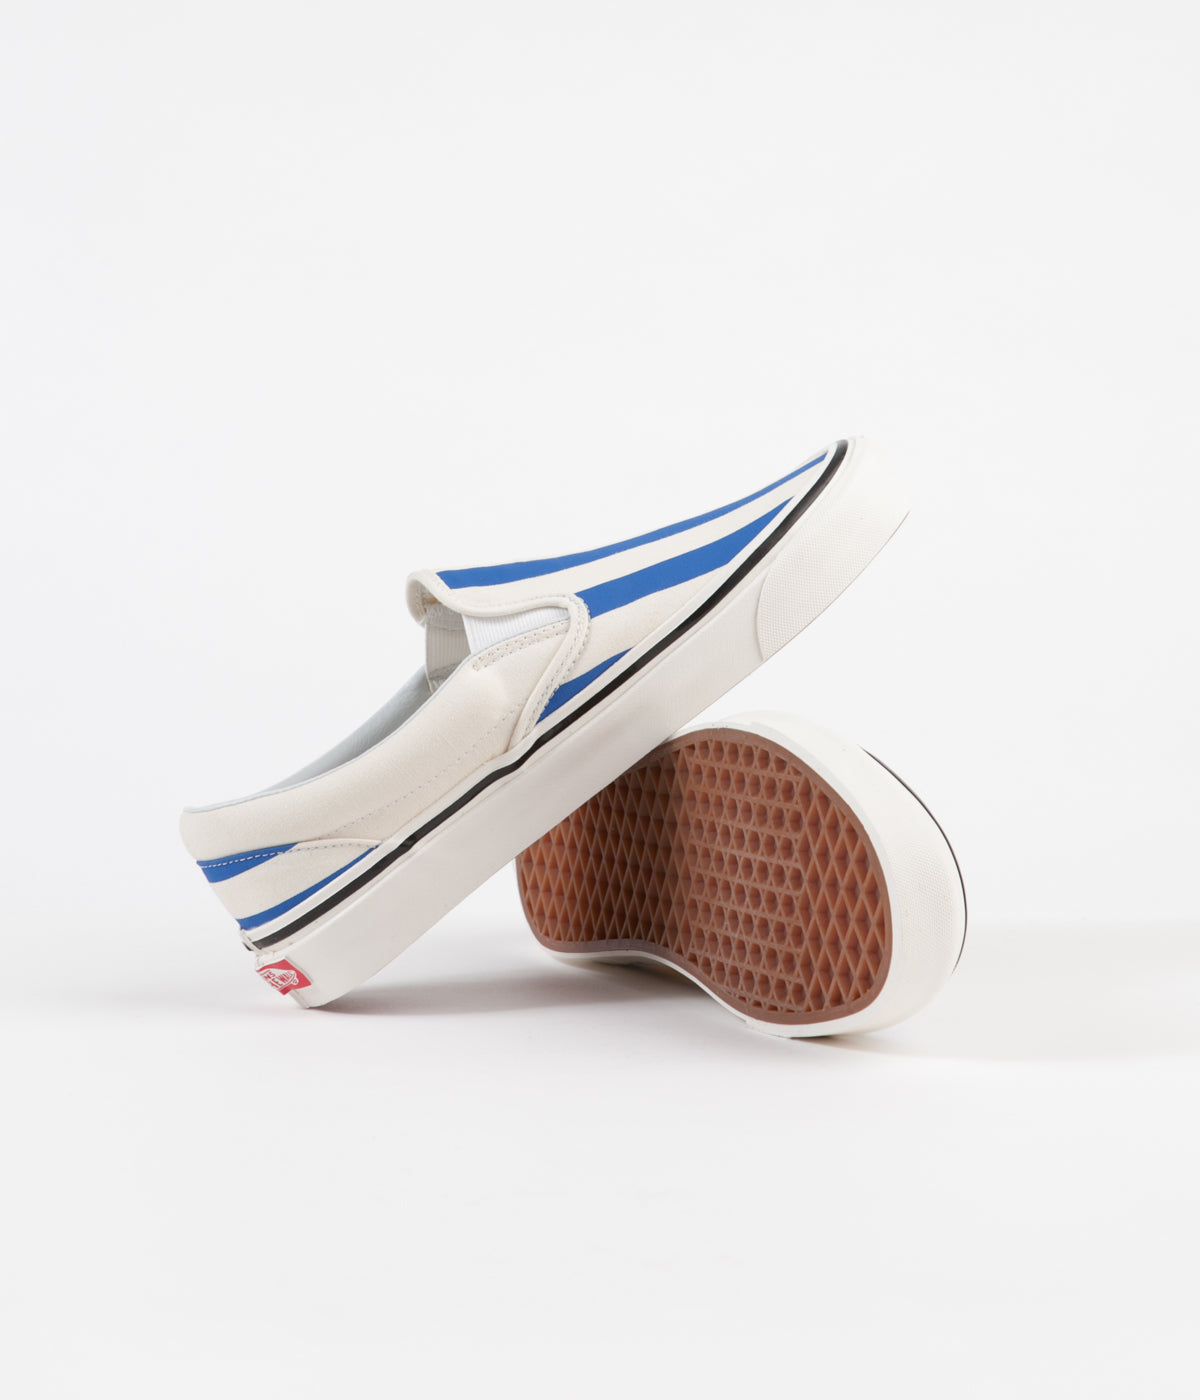 Vans Classic Slip On 98 DX Anaheim Factory Shoes OG White